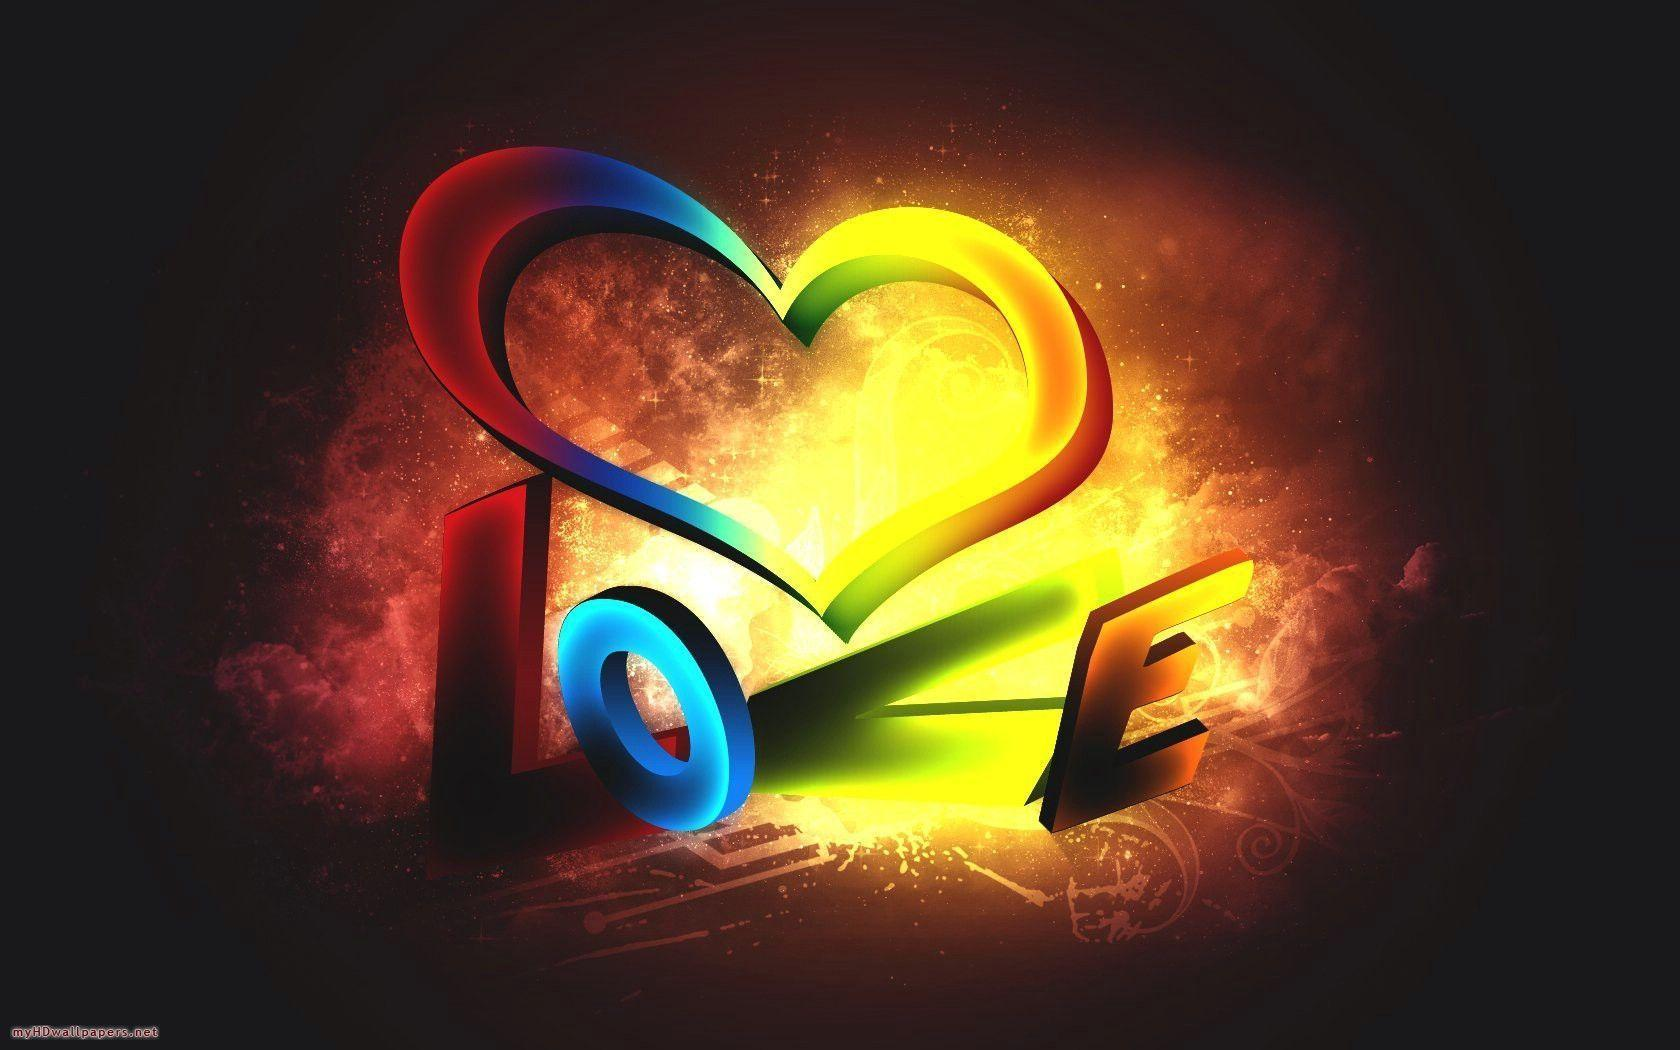 Wallpaper download hd 3d - 3d Love Wallpapers Zem Wallpaper Is The Best Place Where You Get